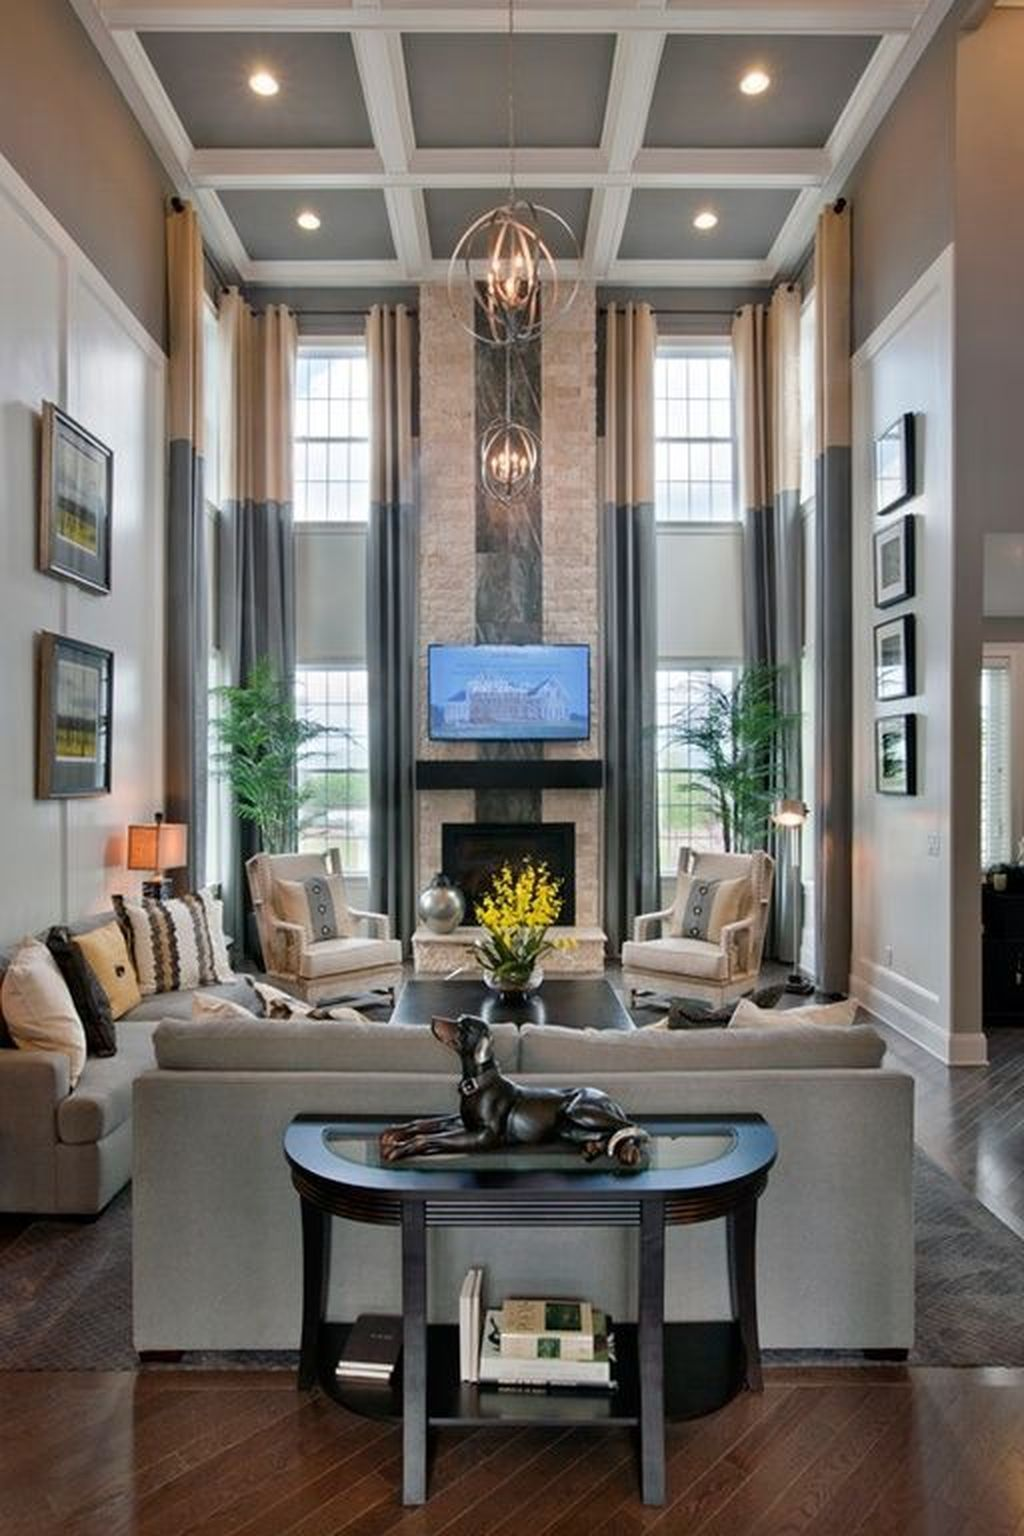 30 Tall Curtain Living Room Design 40 With Images High